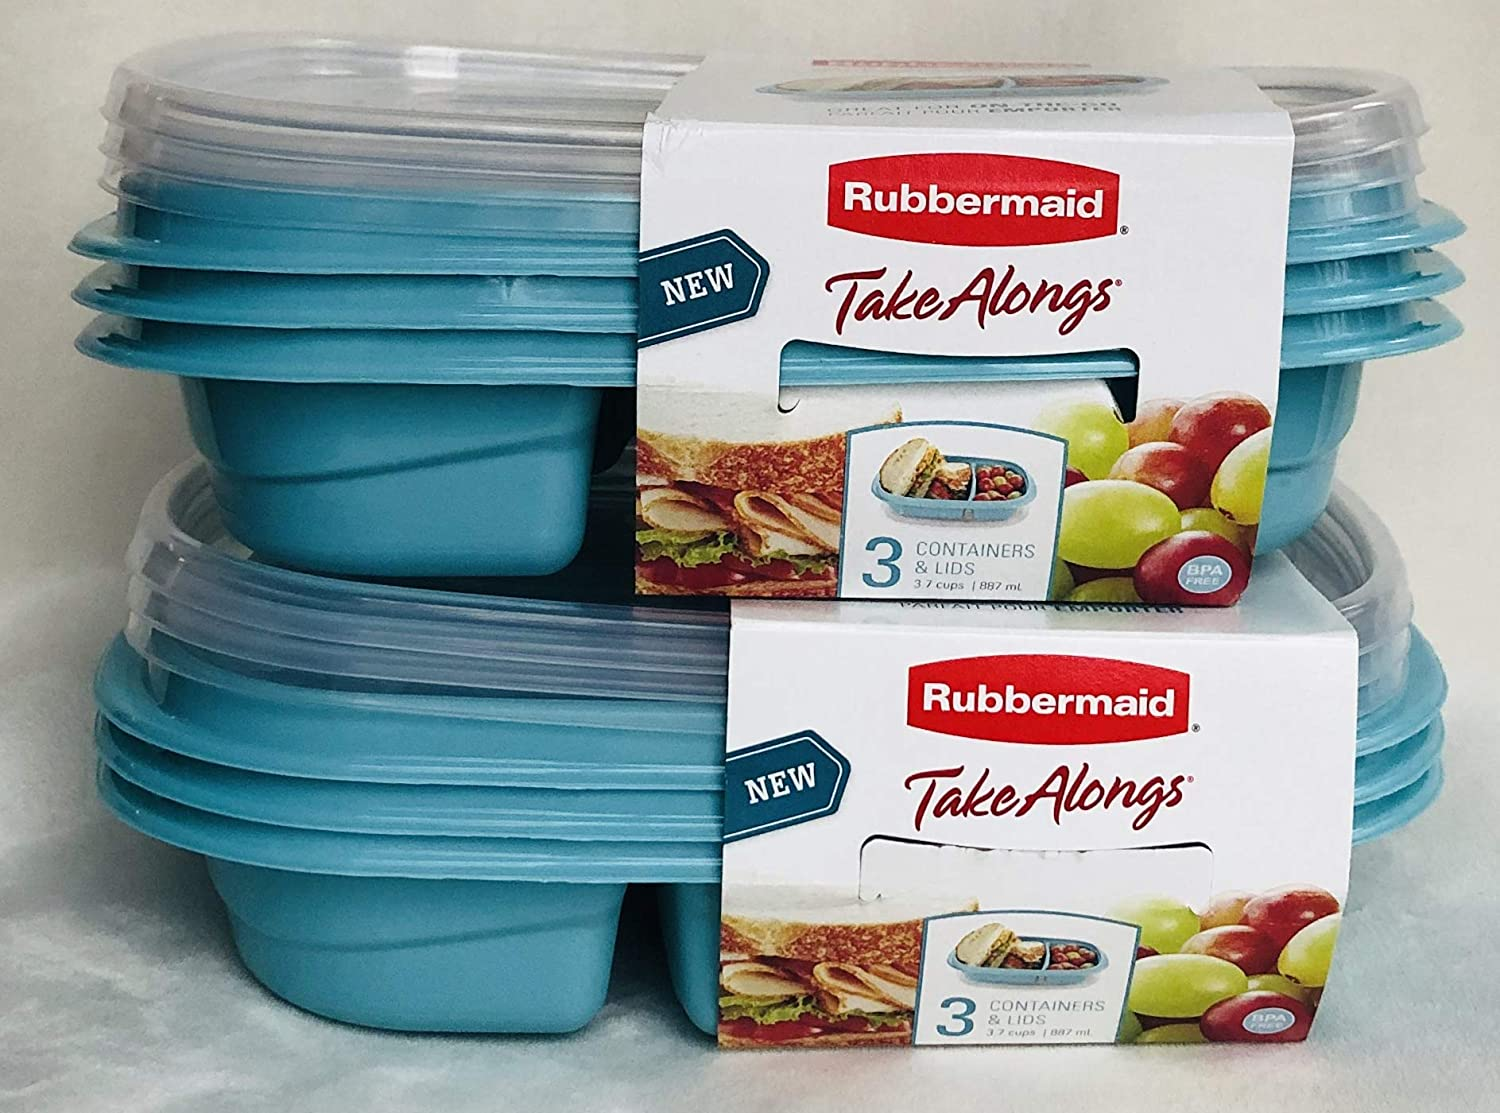 Rubbermaid TakeAlongs 12-Piece Set Divided-Base Meal Prep Food Storage Containers (6 Bases + 6 Lids) 3.7 cups TEAL